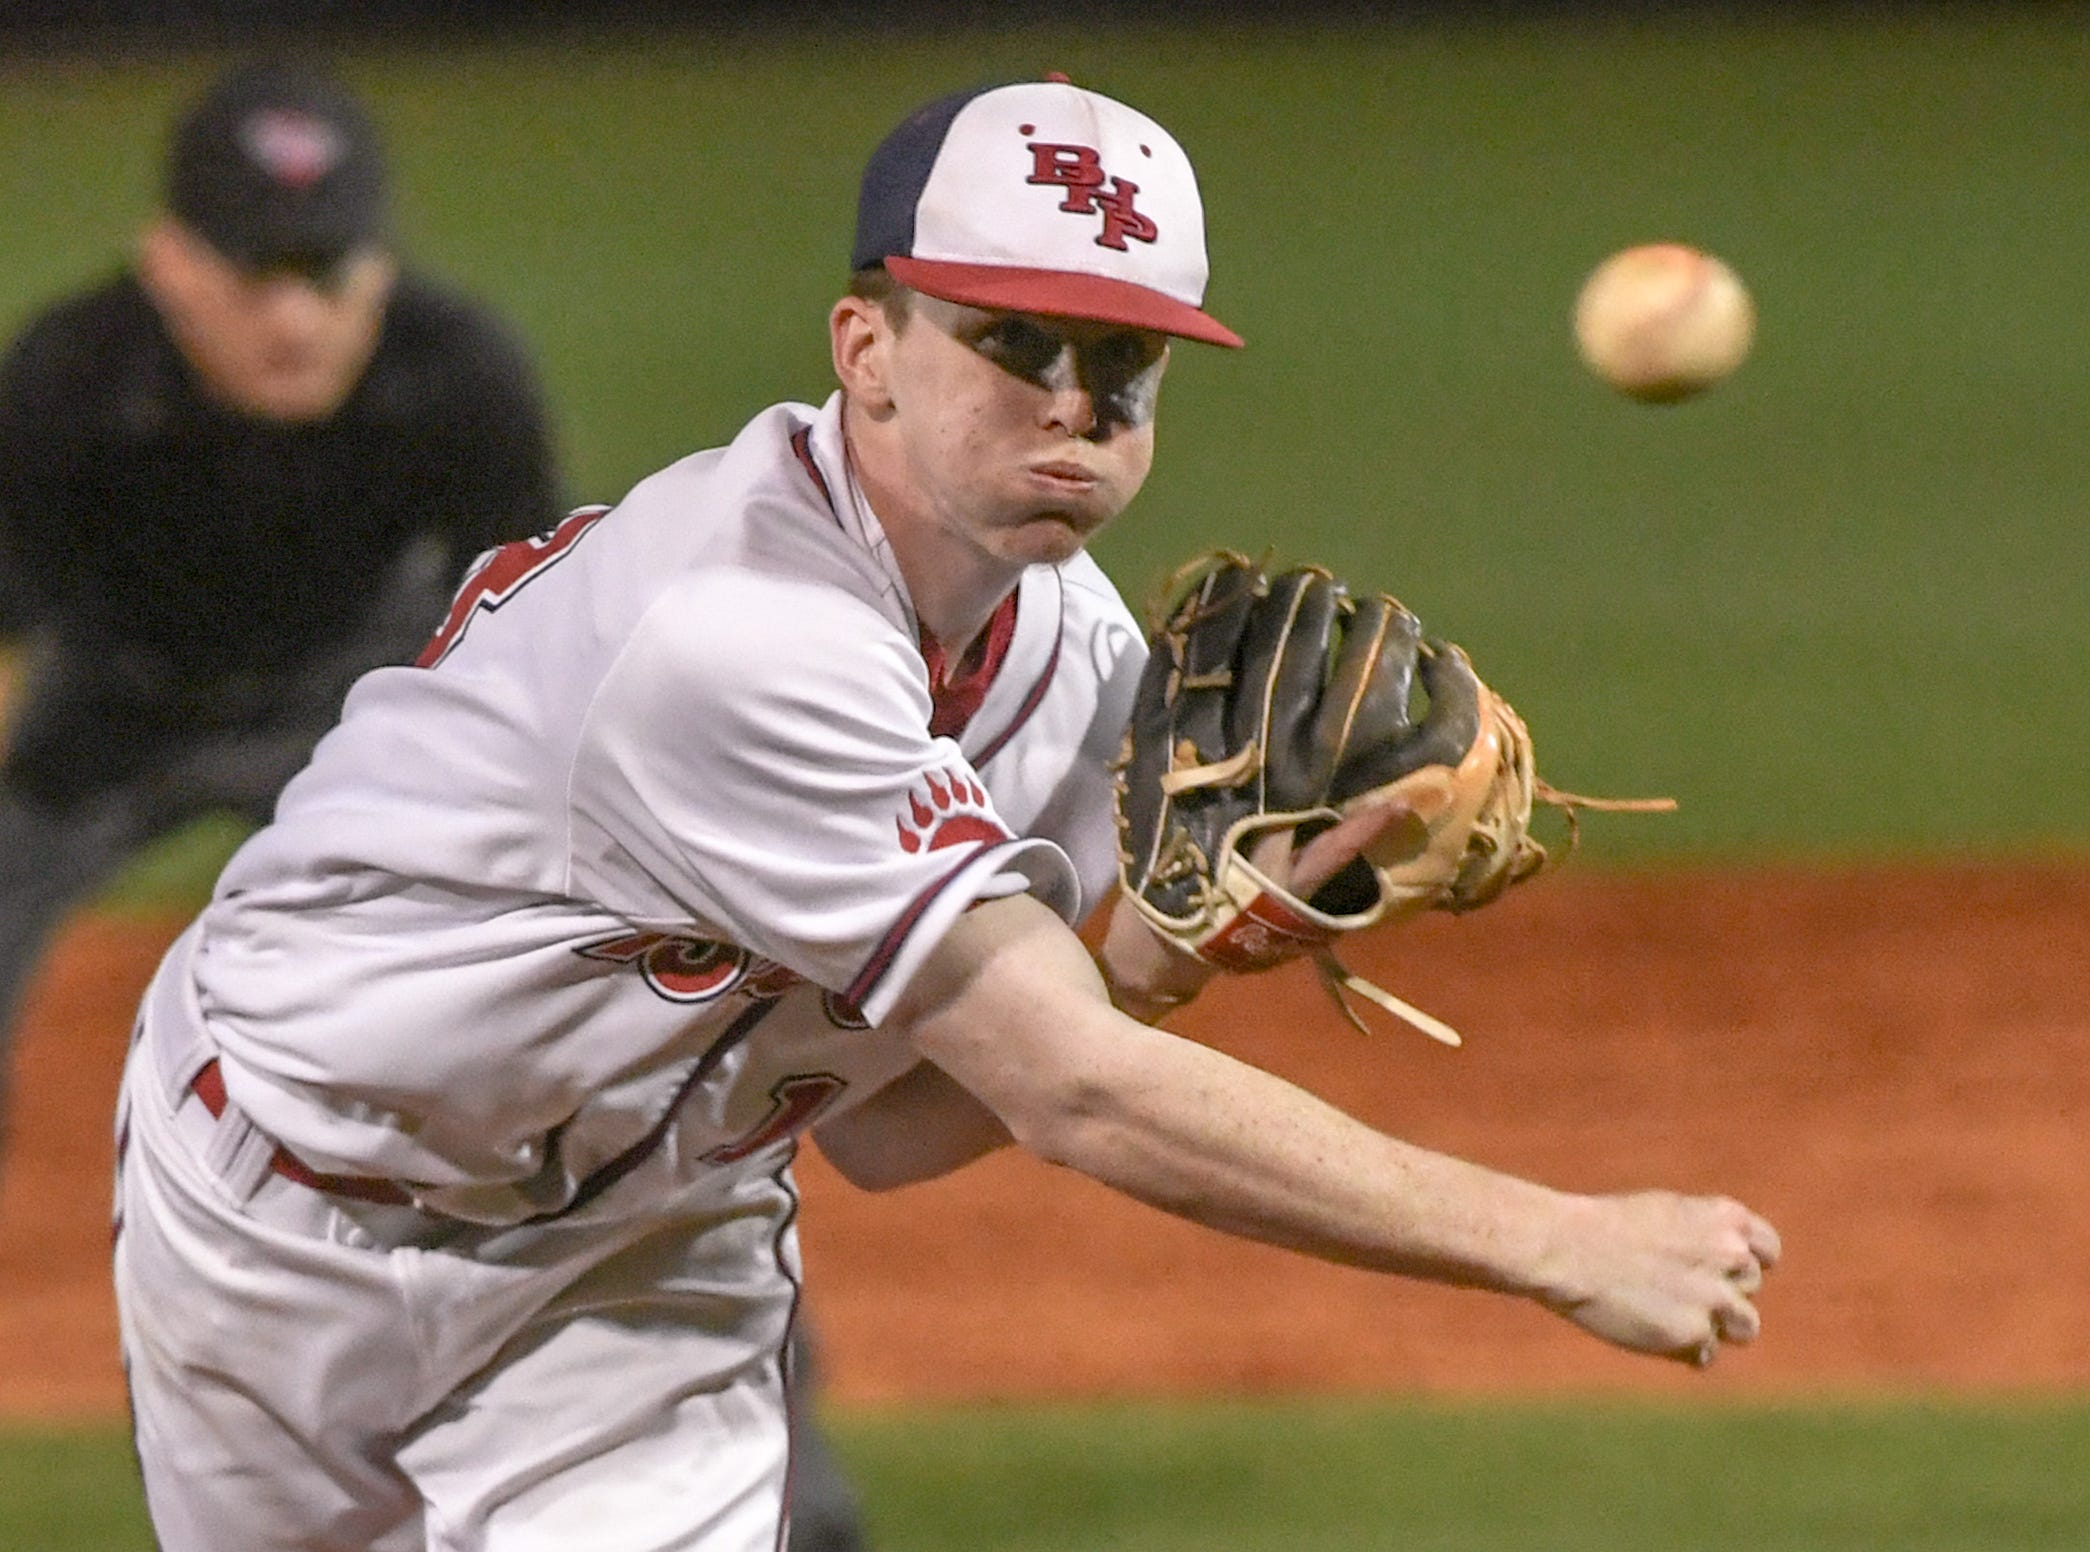 Belton-Honea Path senior Landon Gaddis (18) throws the final pitch against Wren to end the top of the seventh inning at Belton-Honea Path High School in Honea Path Wednesday, April 10, 2019.  BHP won 7-5 and the Class AAAA Region 1 title.